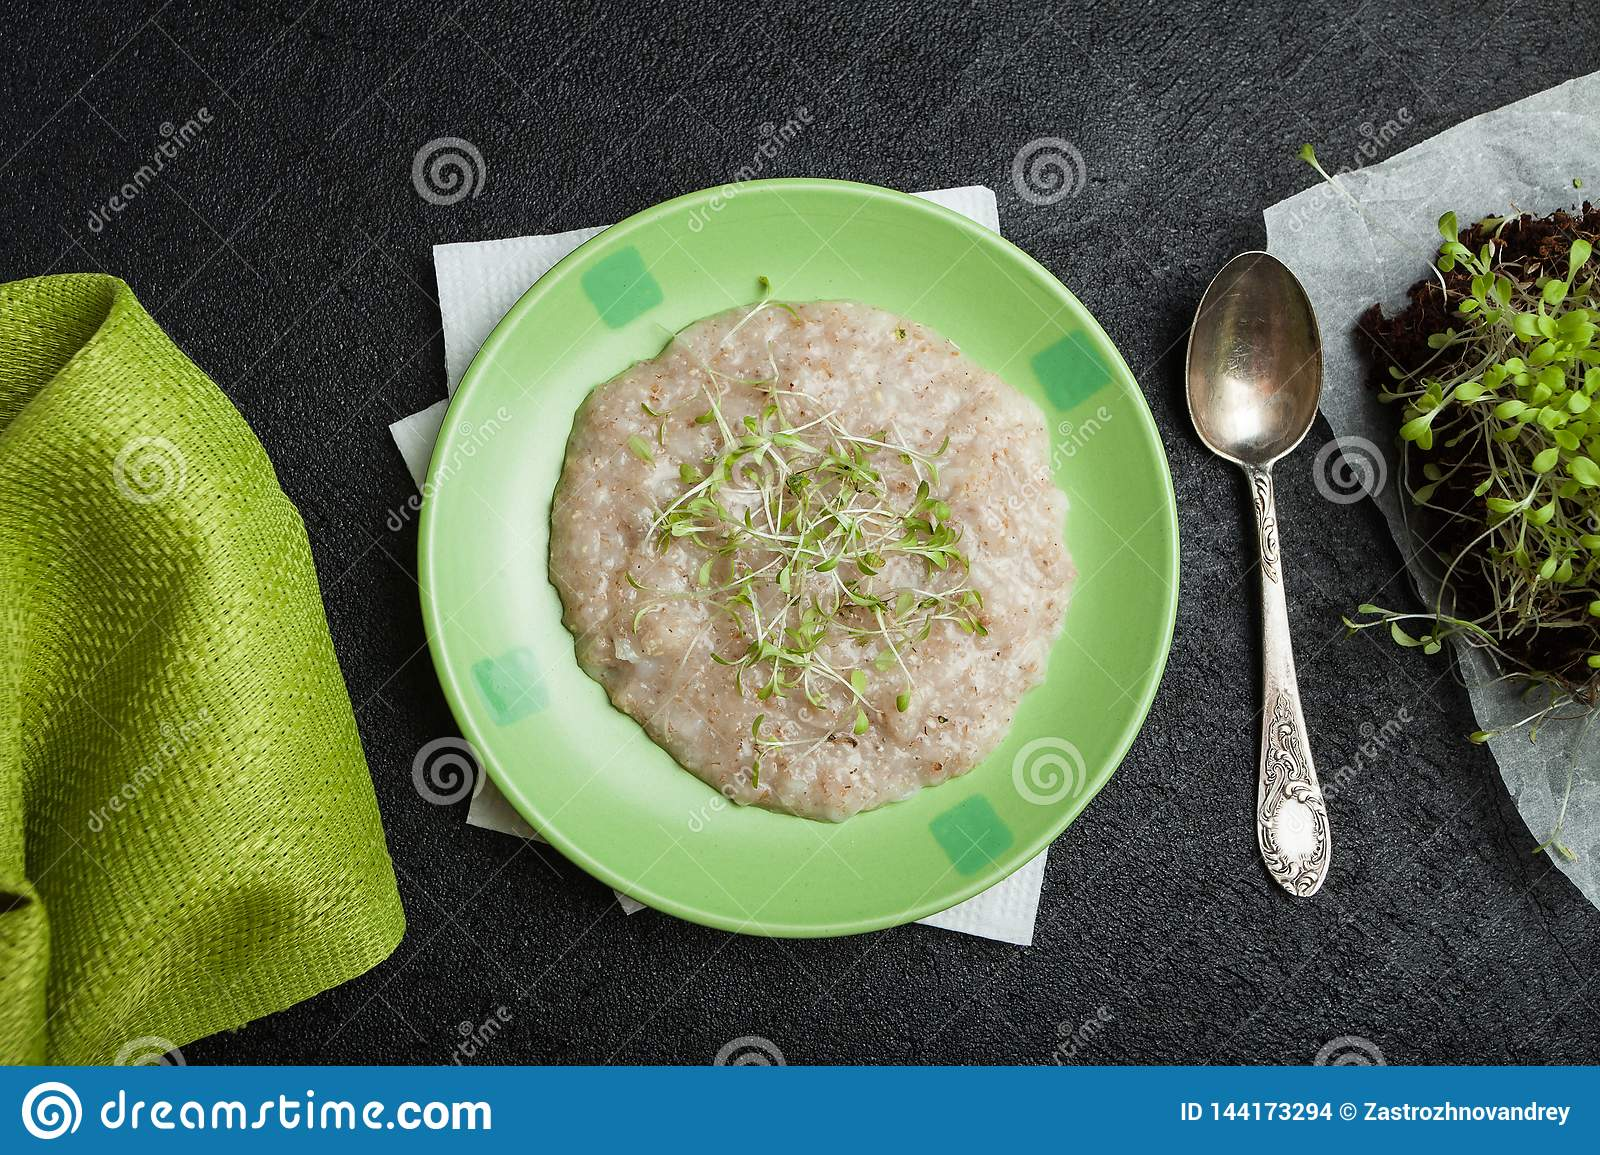 Morning breakfast, organic oatmeal with micro greens on a black background. A towel, a vintage spoon and young salad sprouts